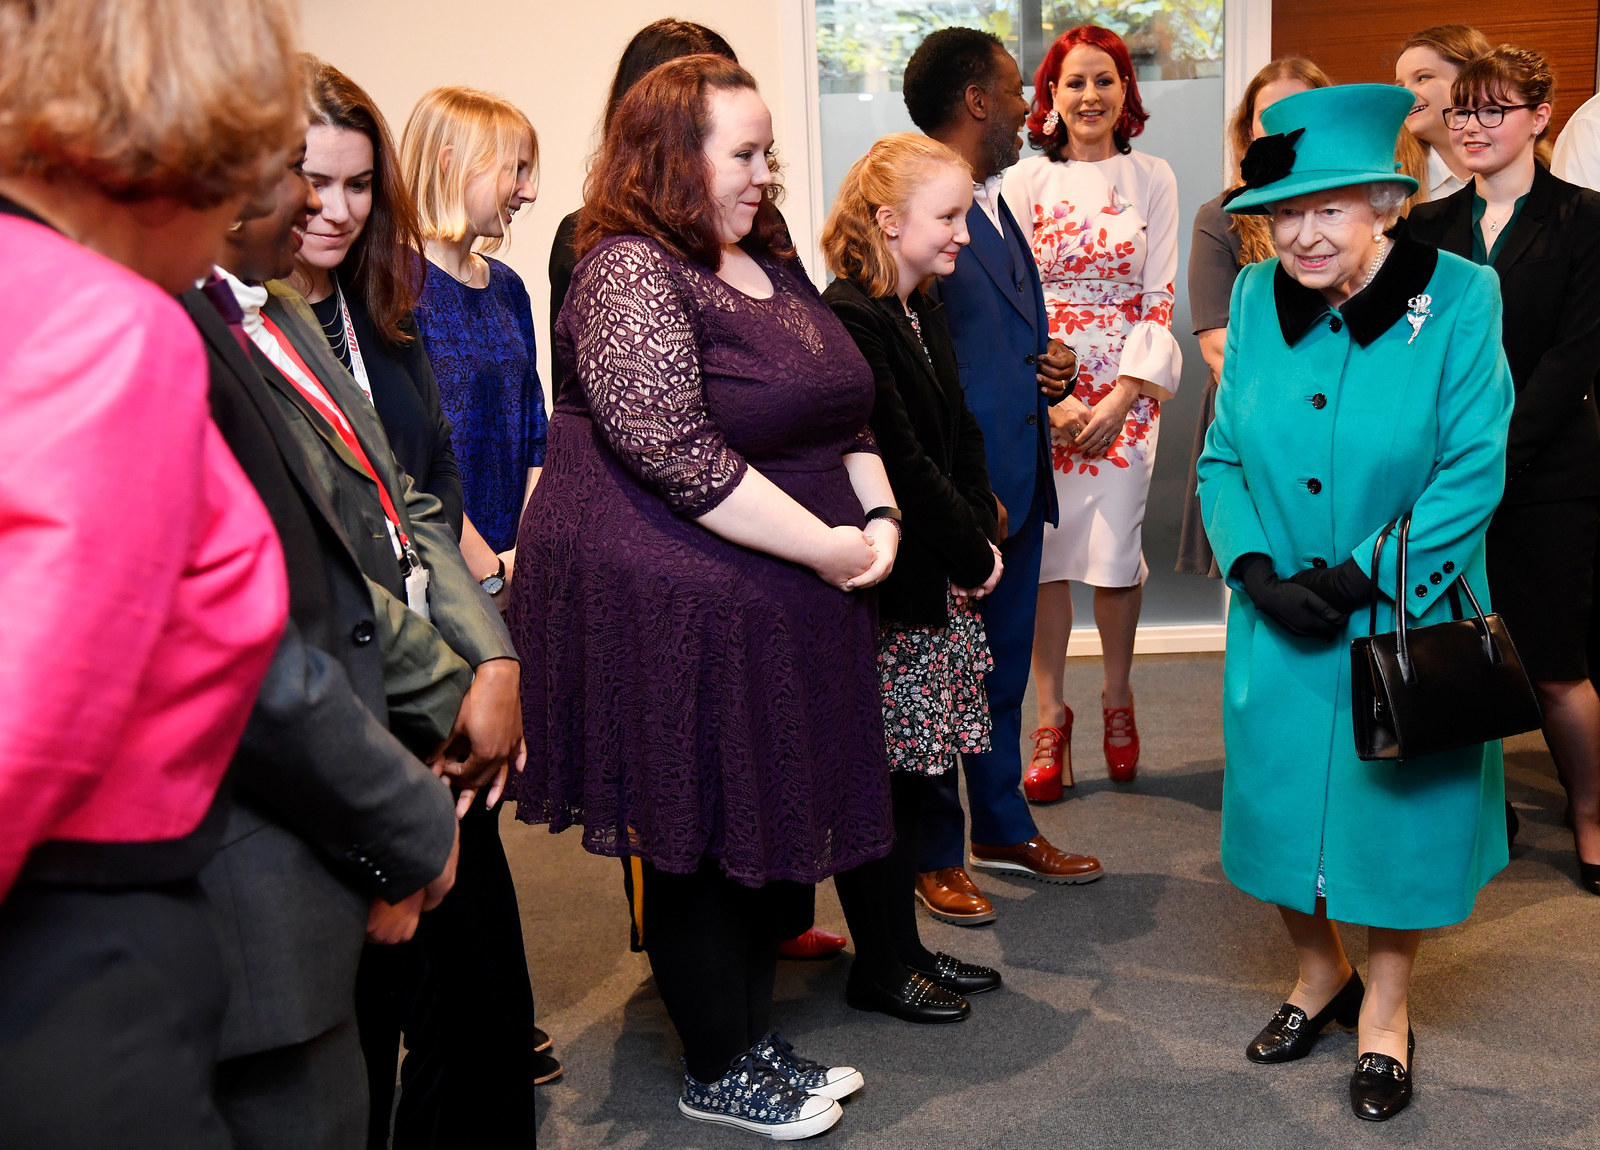 The queen seemed to understand, though.